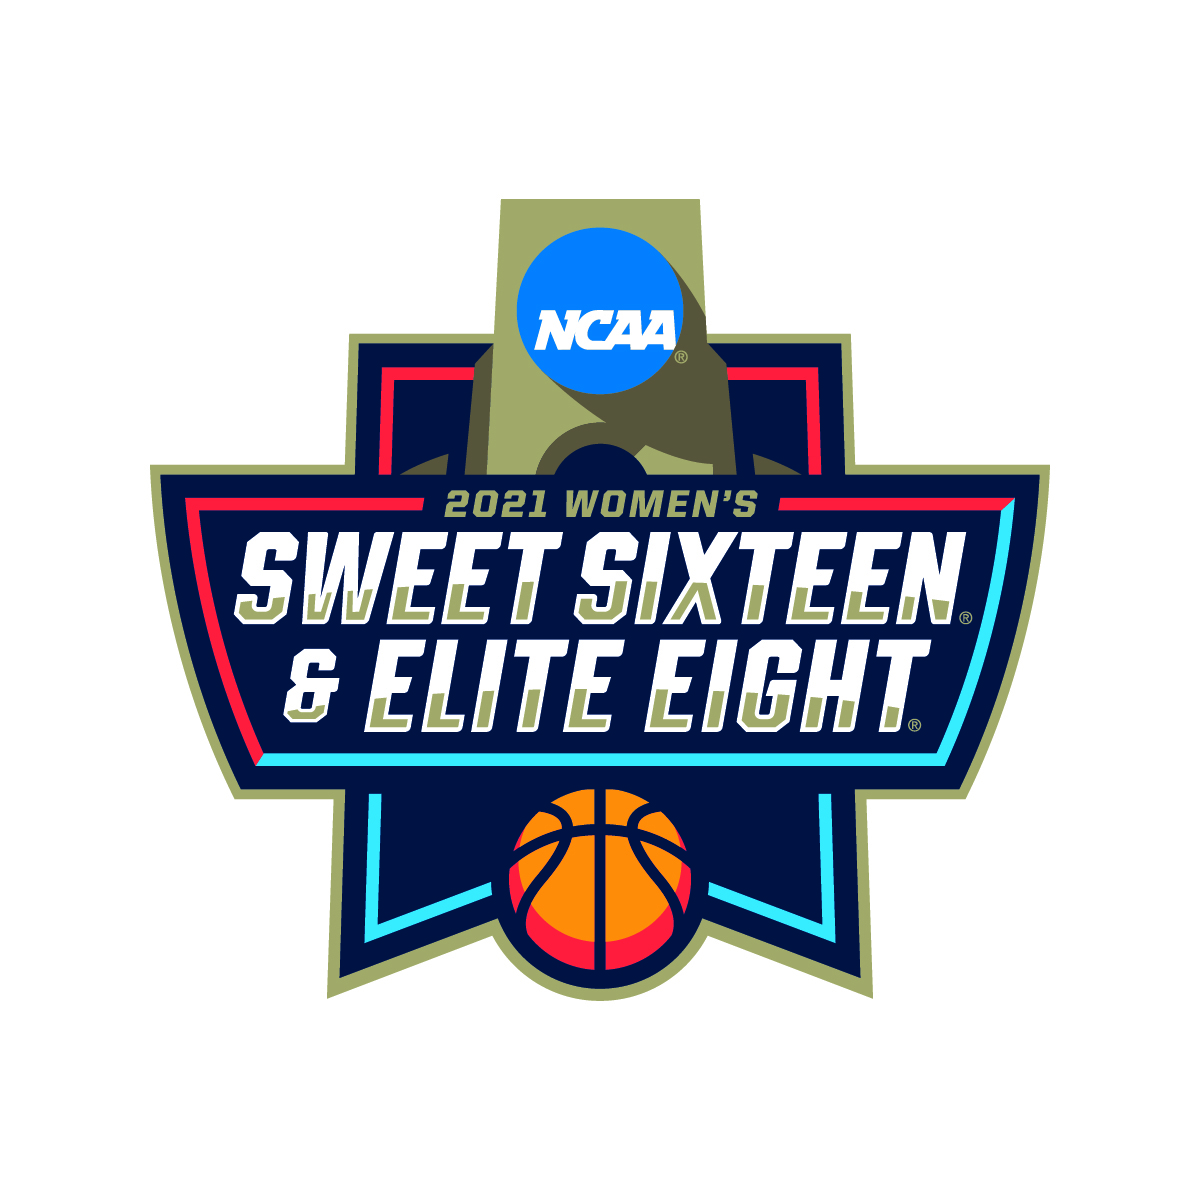 Sweet 16 Matchups and Schedule Set